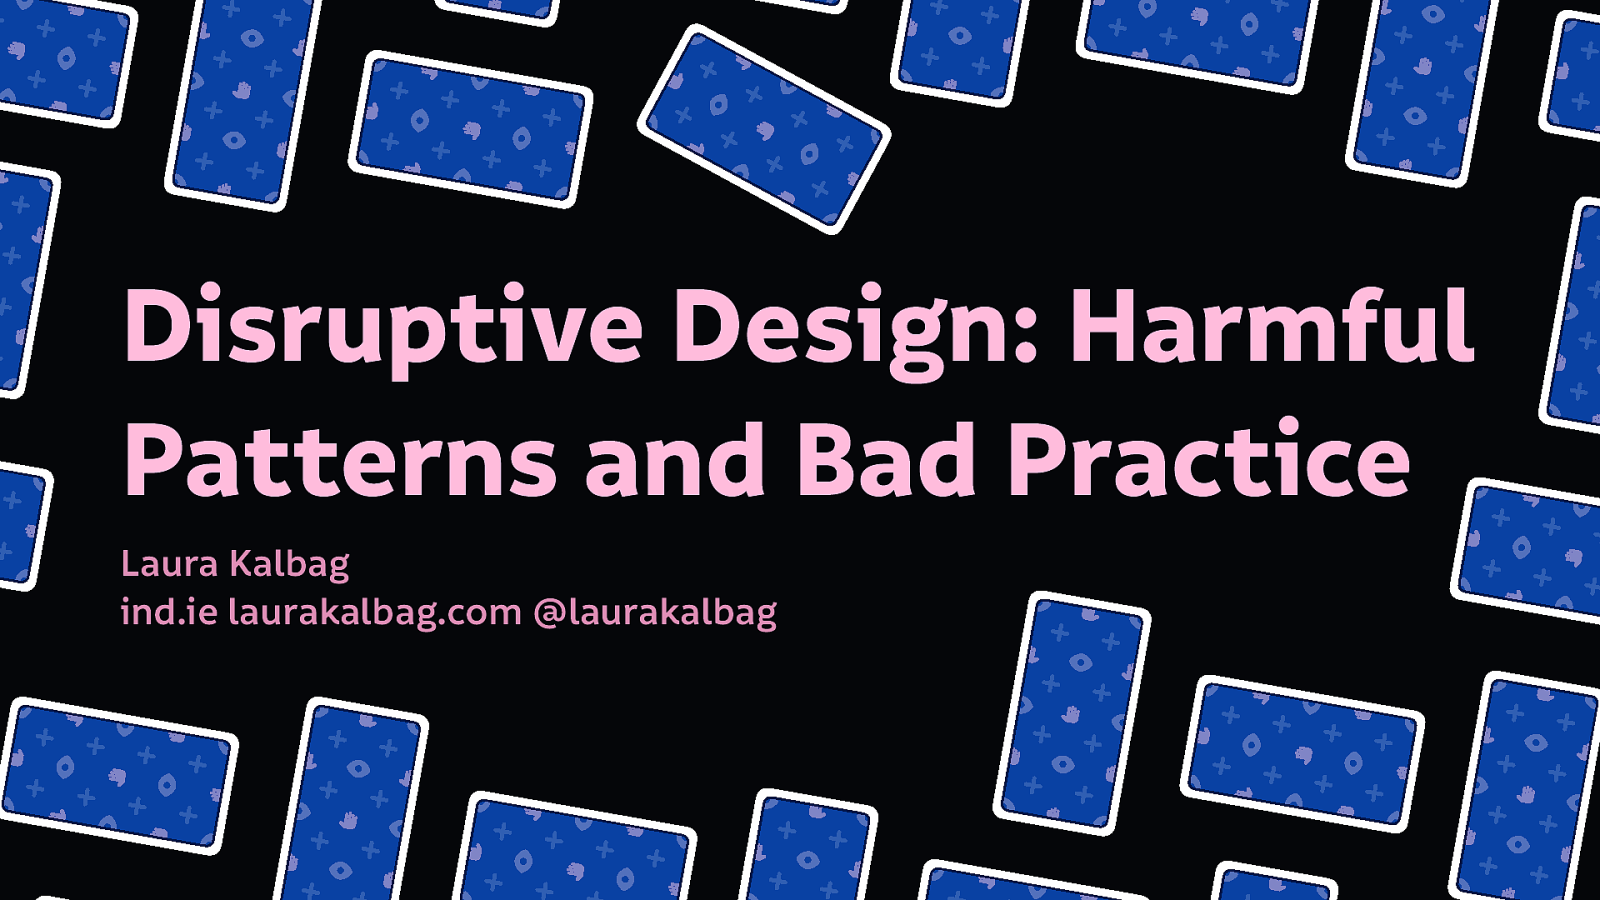 Disruptive Design: Harmful Patterns and Bad Practice